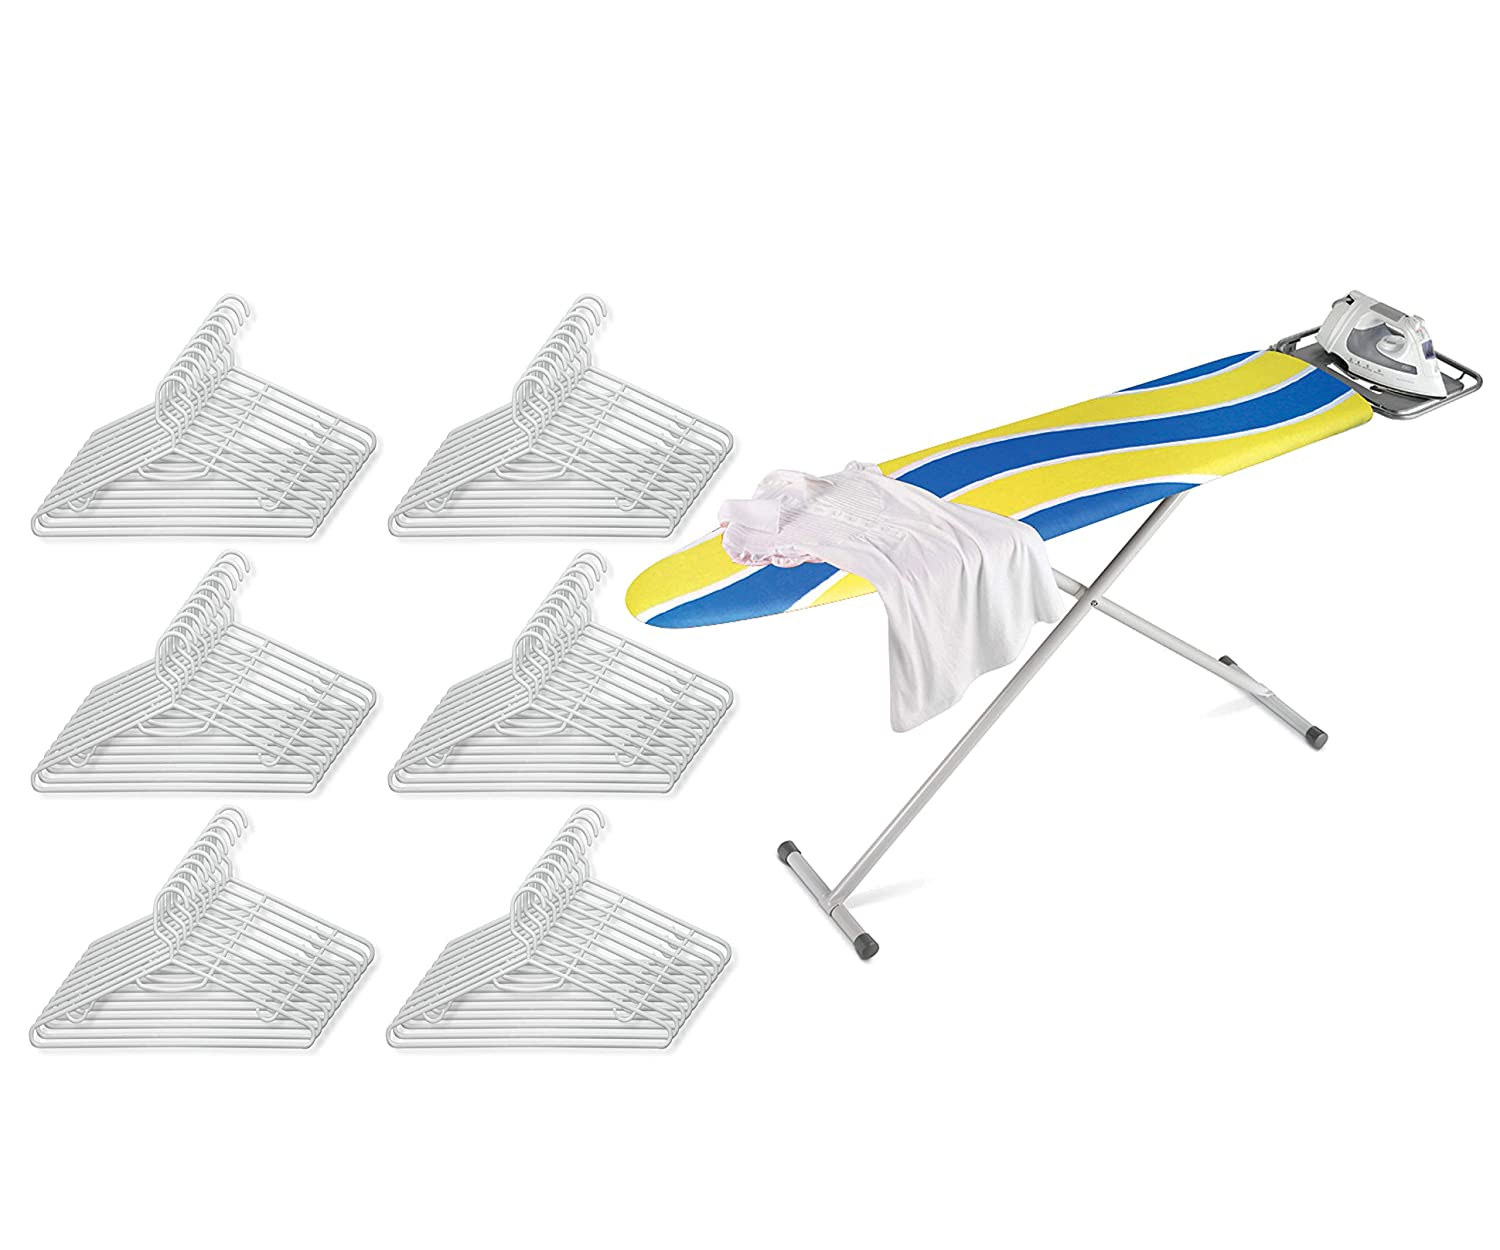 Honey Can Do Ironing Board with 2-Leg Stand and Iron Rest, Blue/Yellow bundle with Honey Can Do Recycled White Plastic Hangers, Pack of 60 (並行輸入) 141[並行輸入] B07S7FC9HX